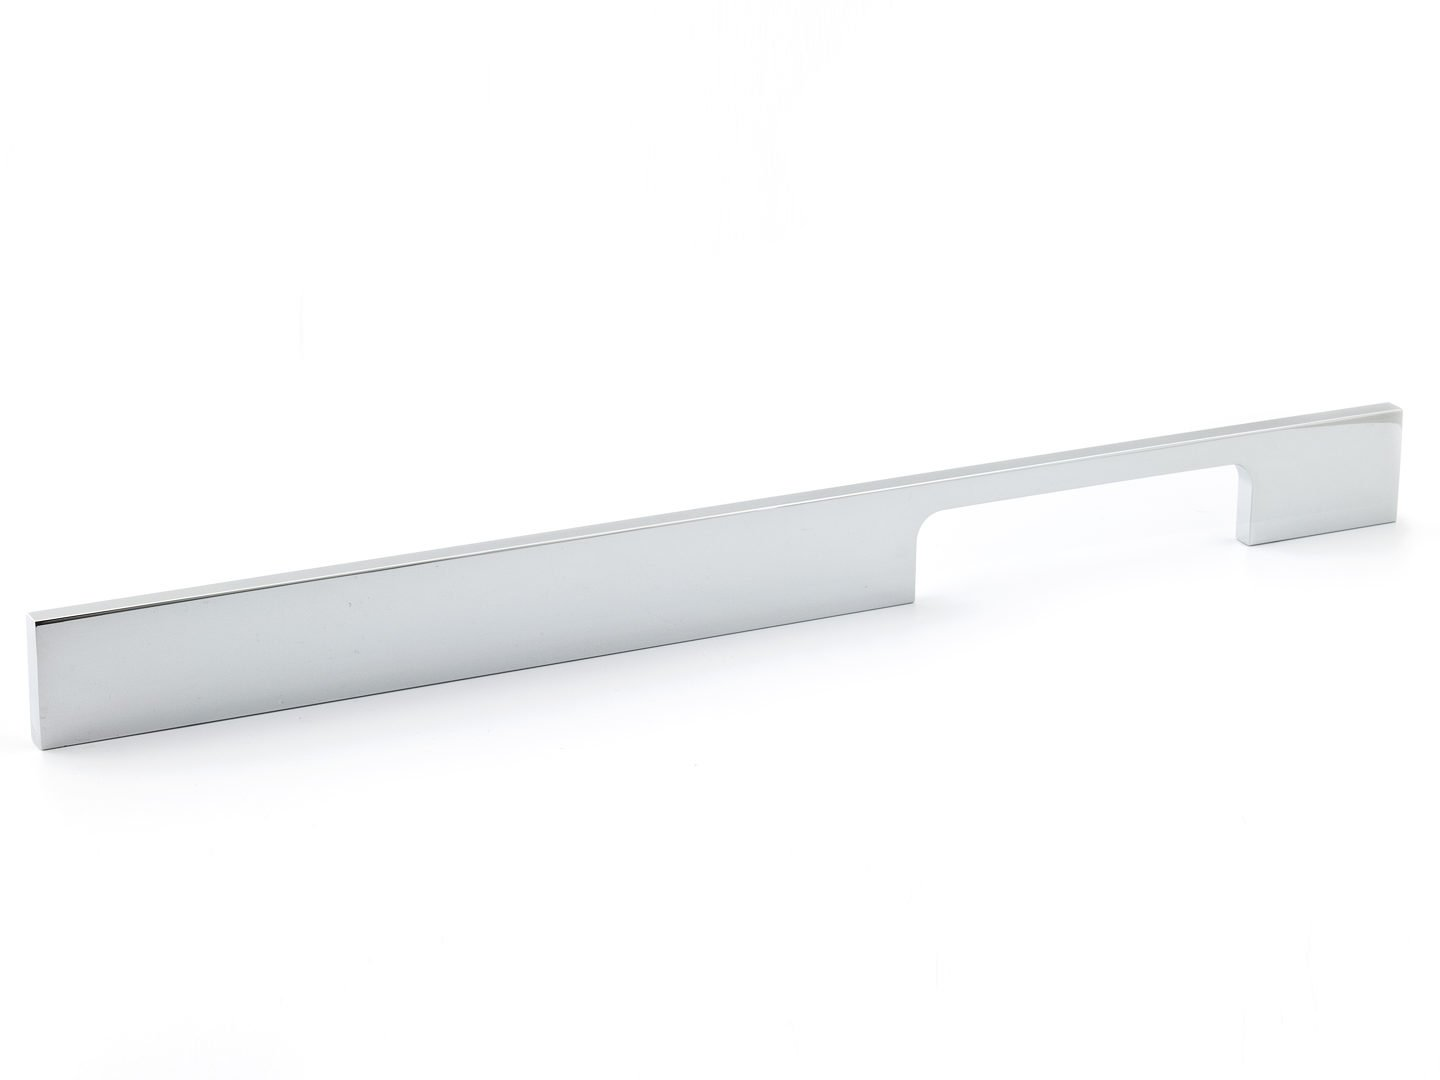 Richelieu Hardware - BP720320140 - Contemporary Metal and Aluminum Pull - 720 - 12 5/8 in (320 mm) - Chrome  Finish